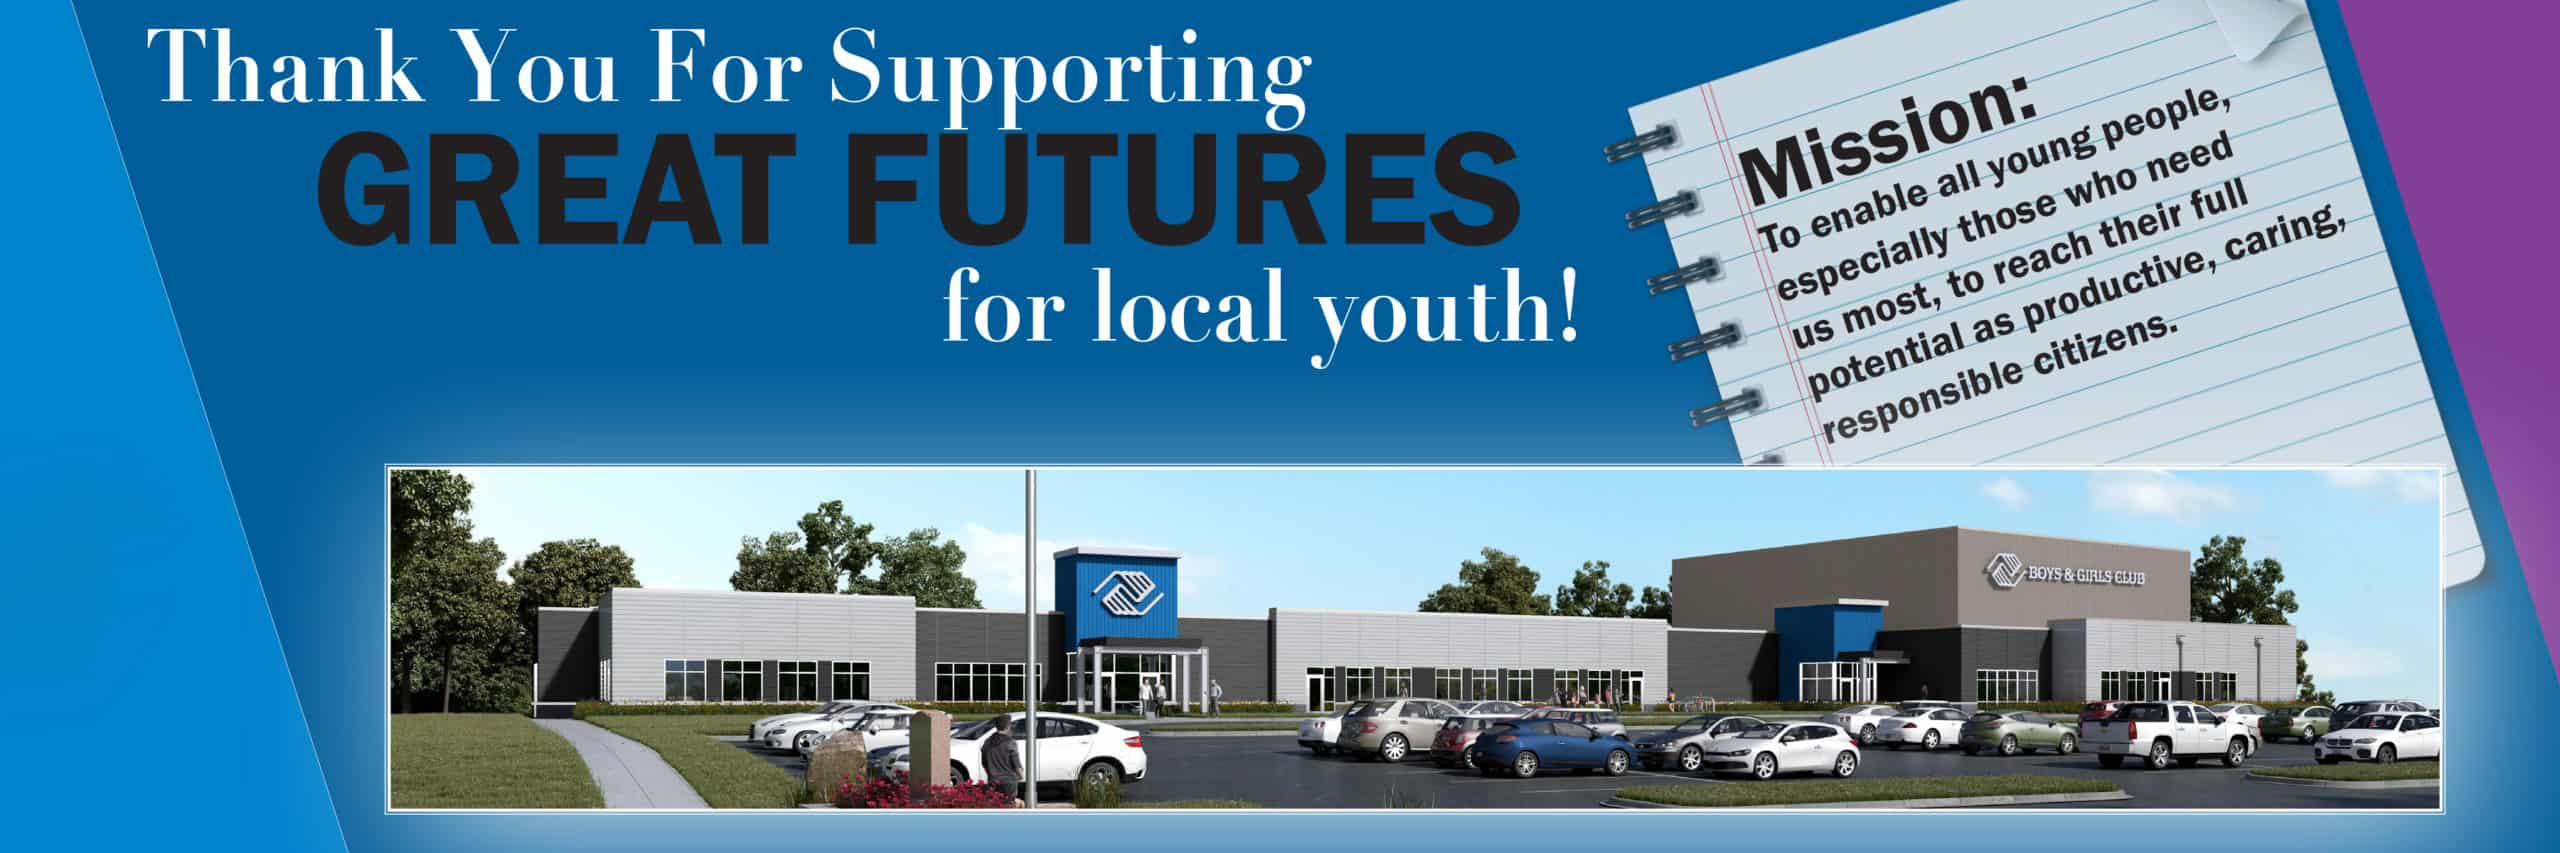 Thank you for supporting local youth